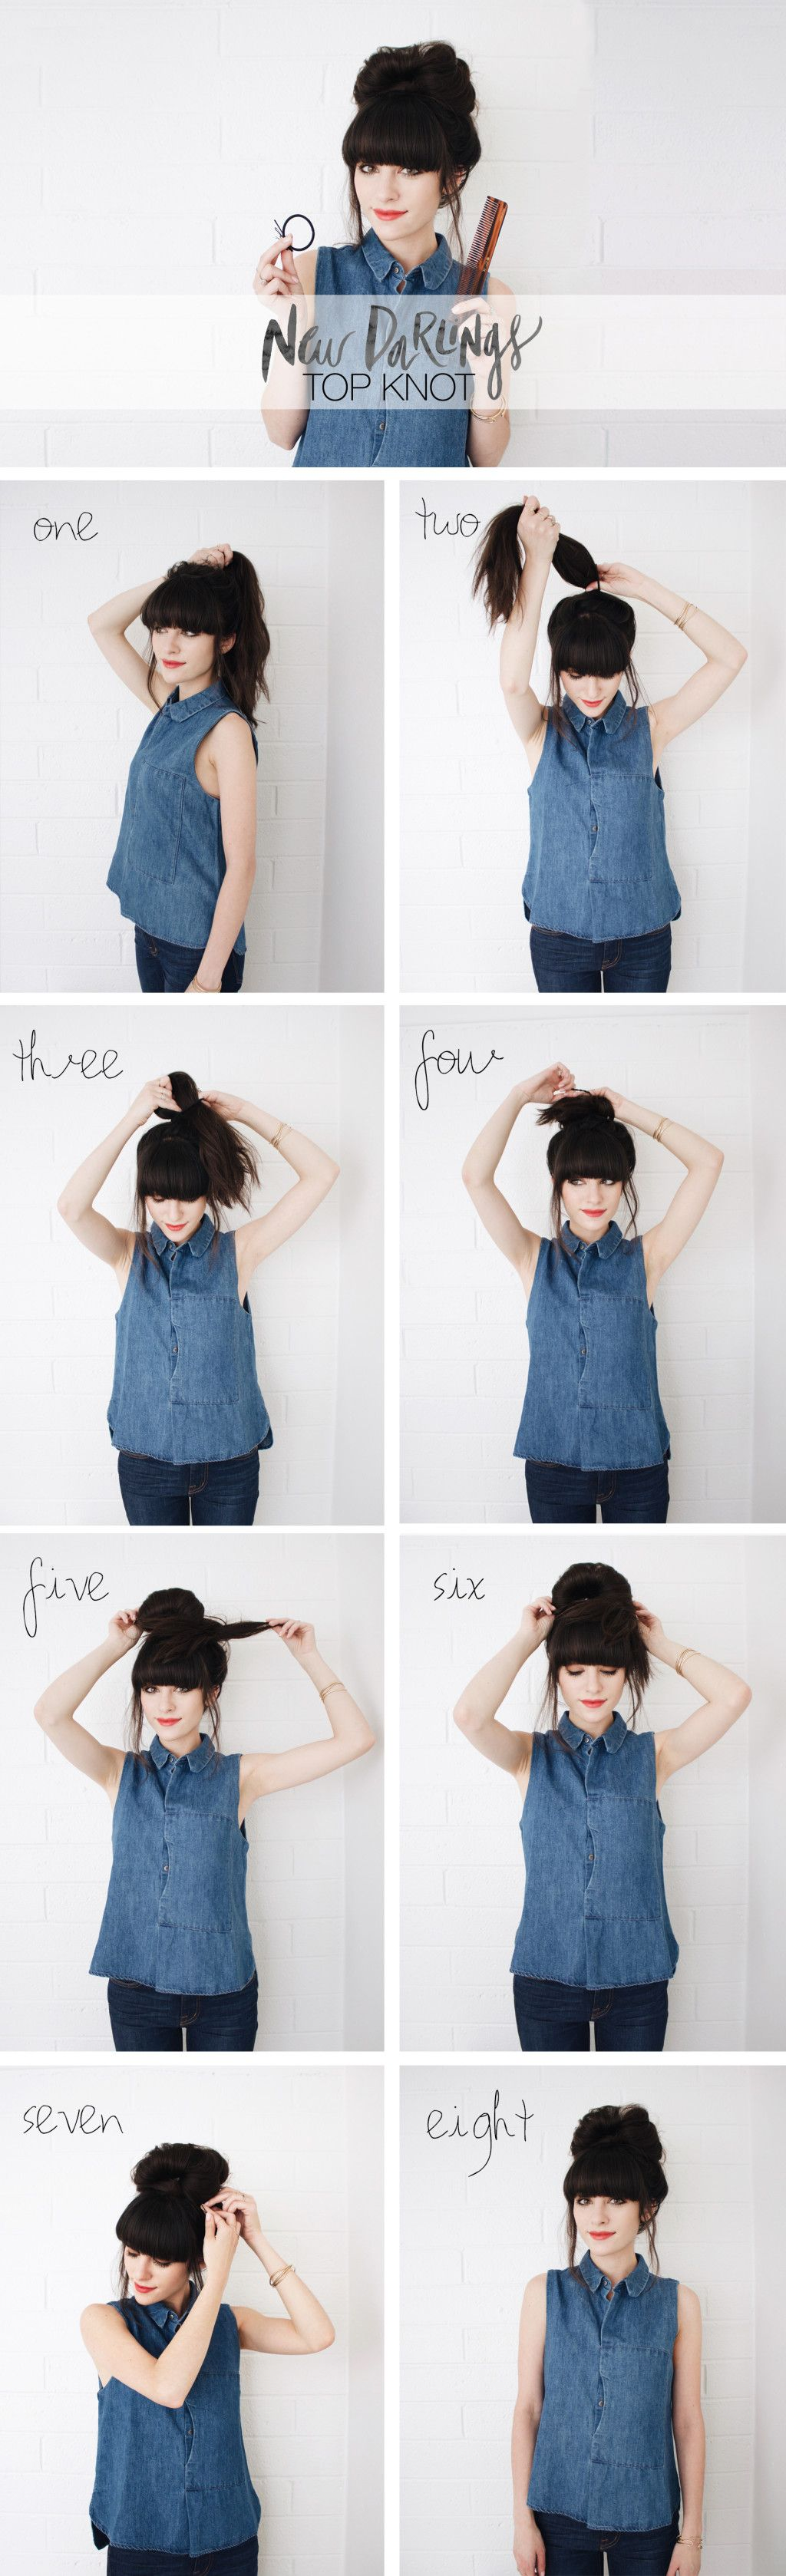 Top Knot Tutorial - New Darlings